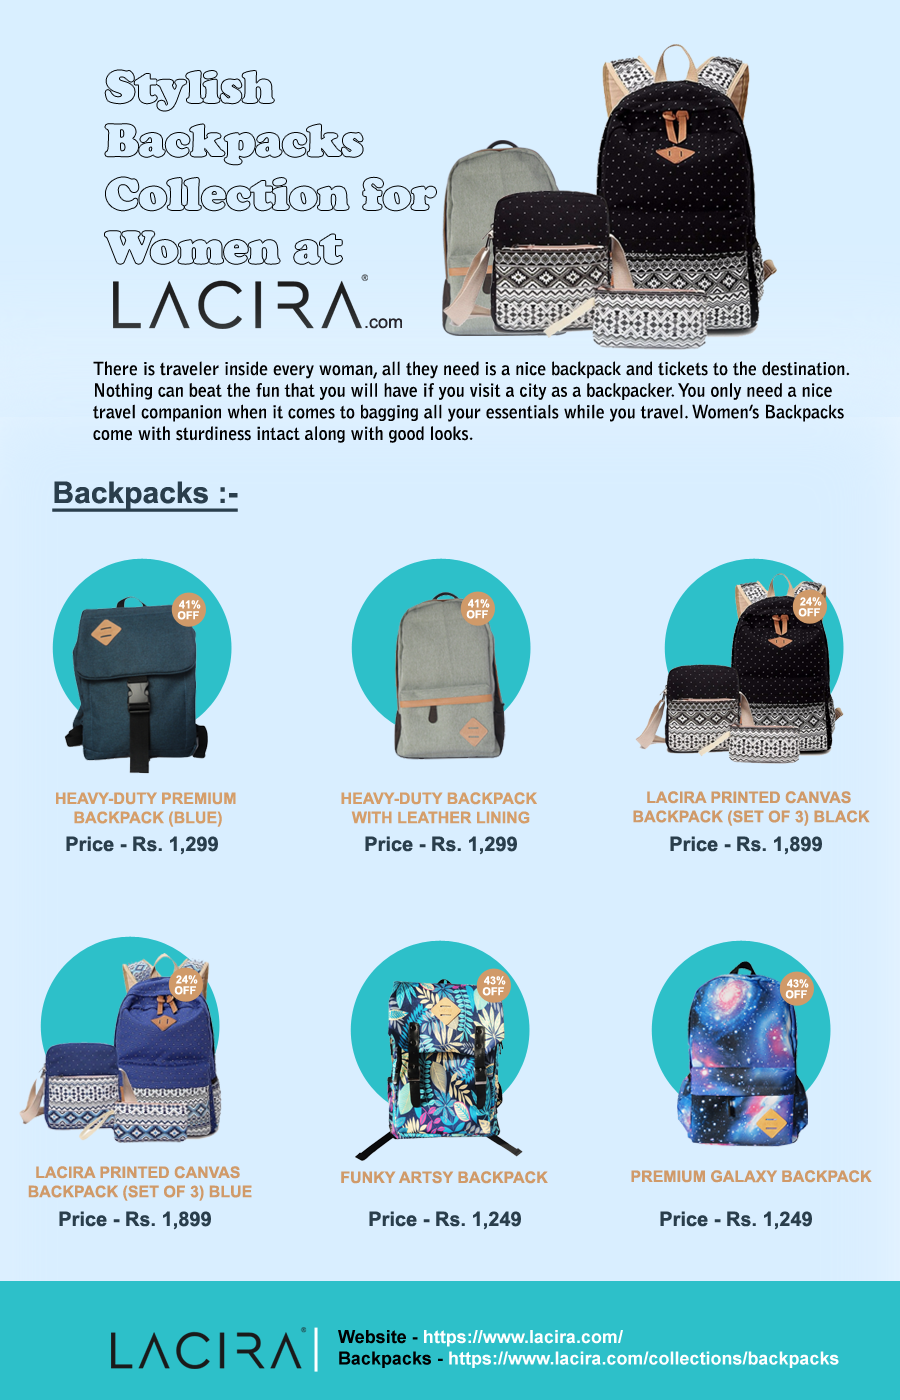 Stylish Backpacks Collection for Women at Lacira There is traveler inside  every women, all they need is nice backpacks and tickets to the destination. d33a1364c0